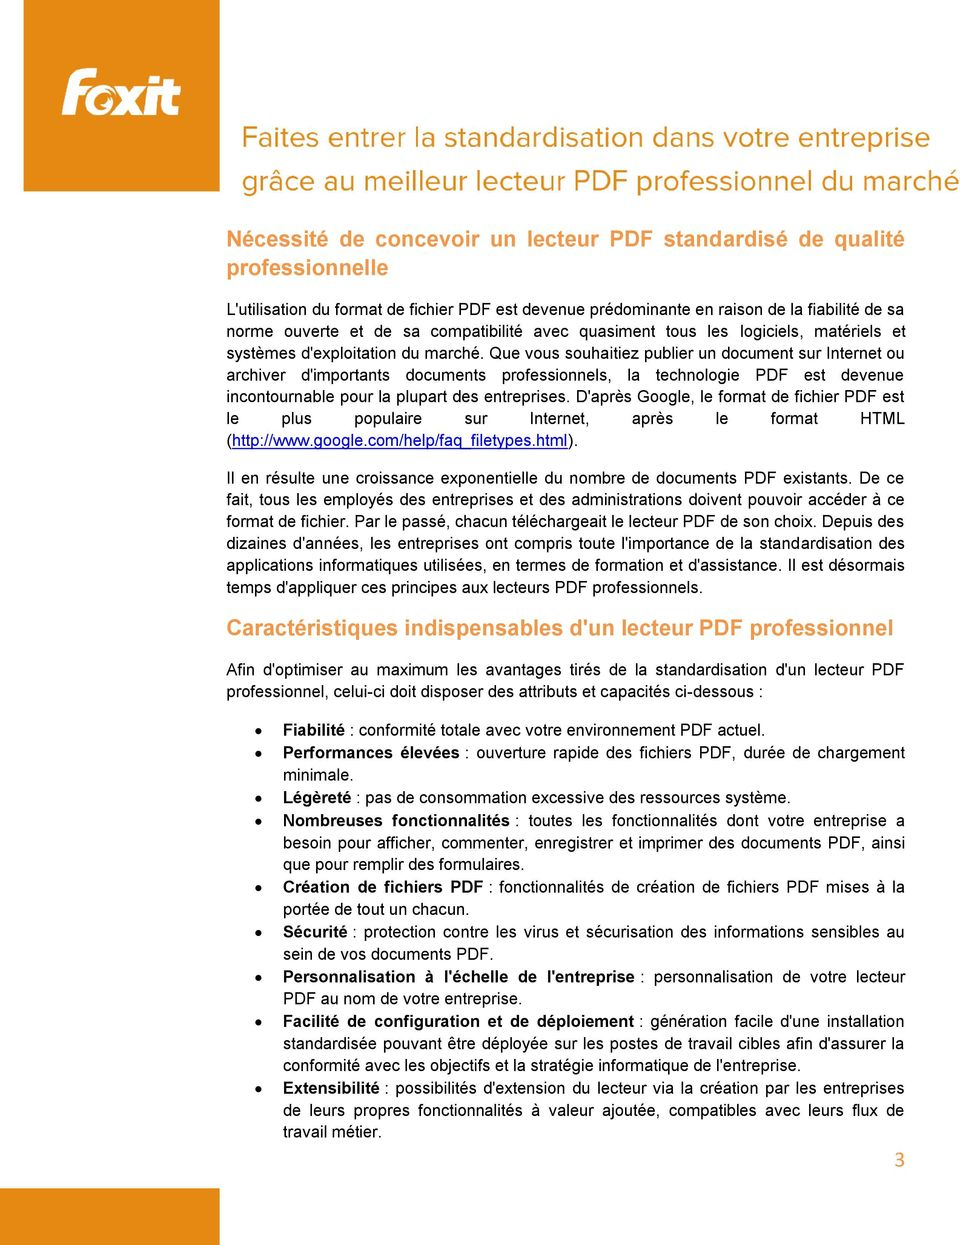 Que vous souhaitiez publier un document sur Internet ou archiver d'importants documents professionnels, la technologie PDF est devenue incontournable pour la plupart des entreprises.